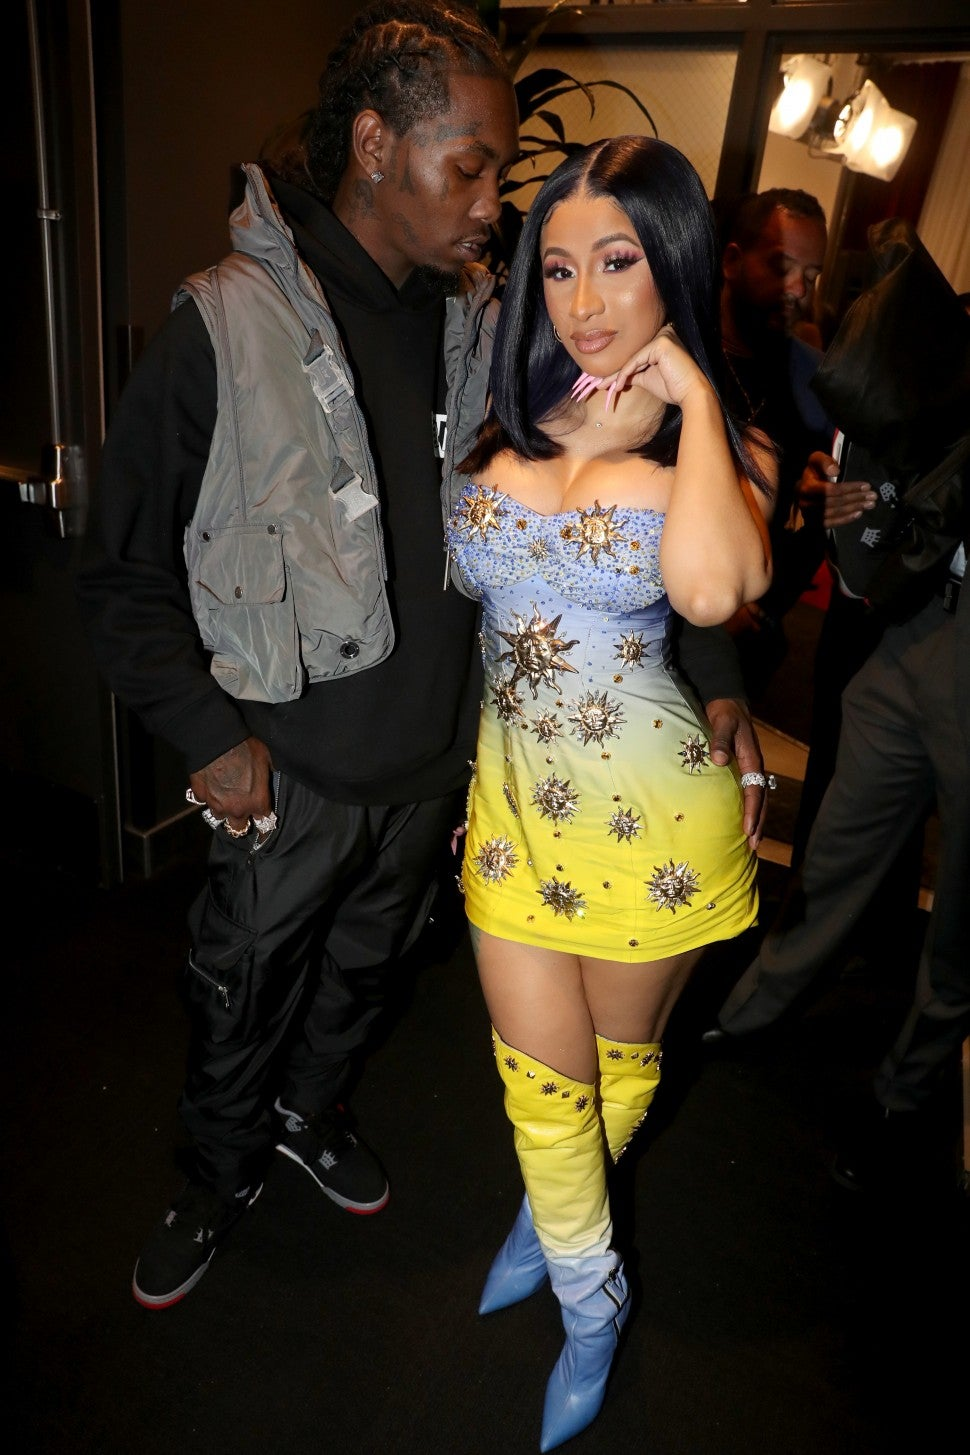 Cardi B and Offset backstage at 2019 BET Awards